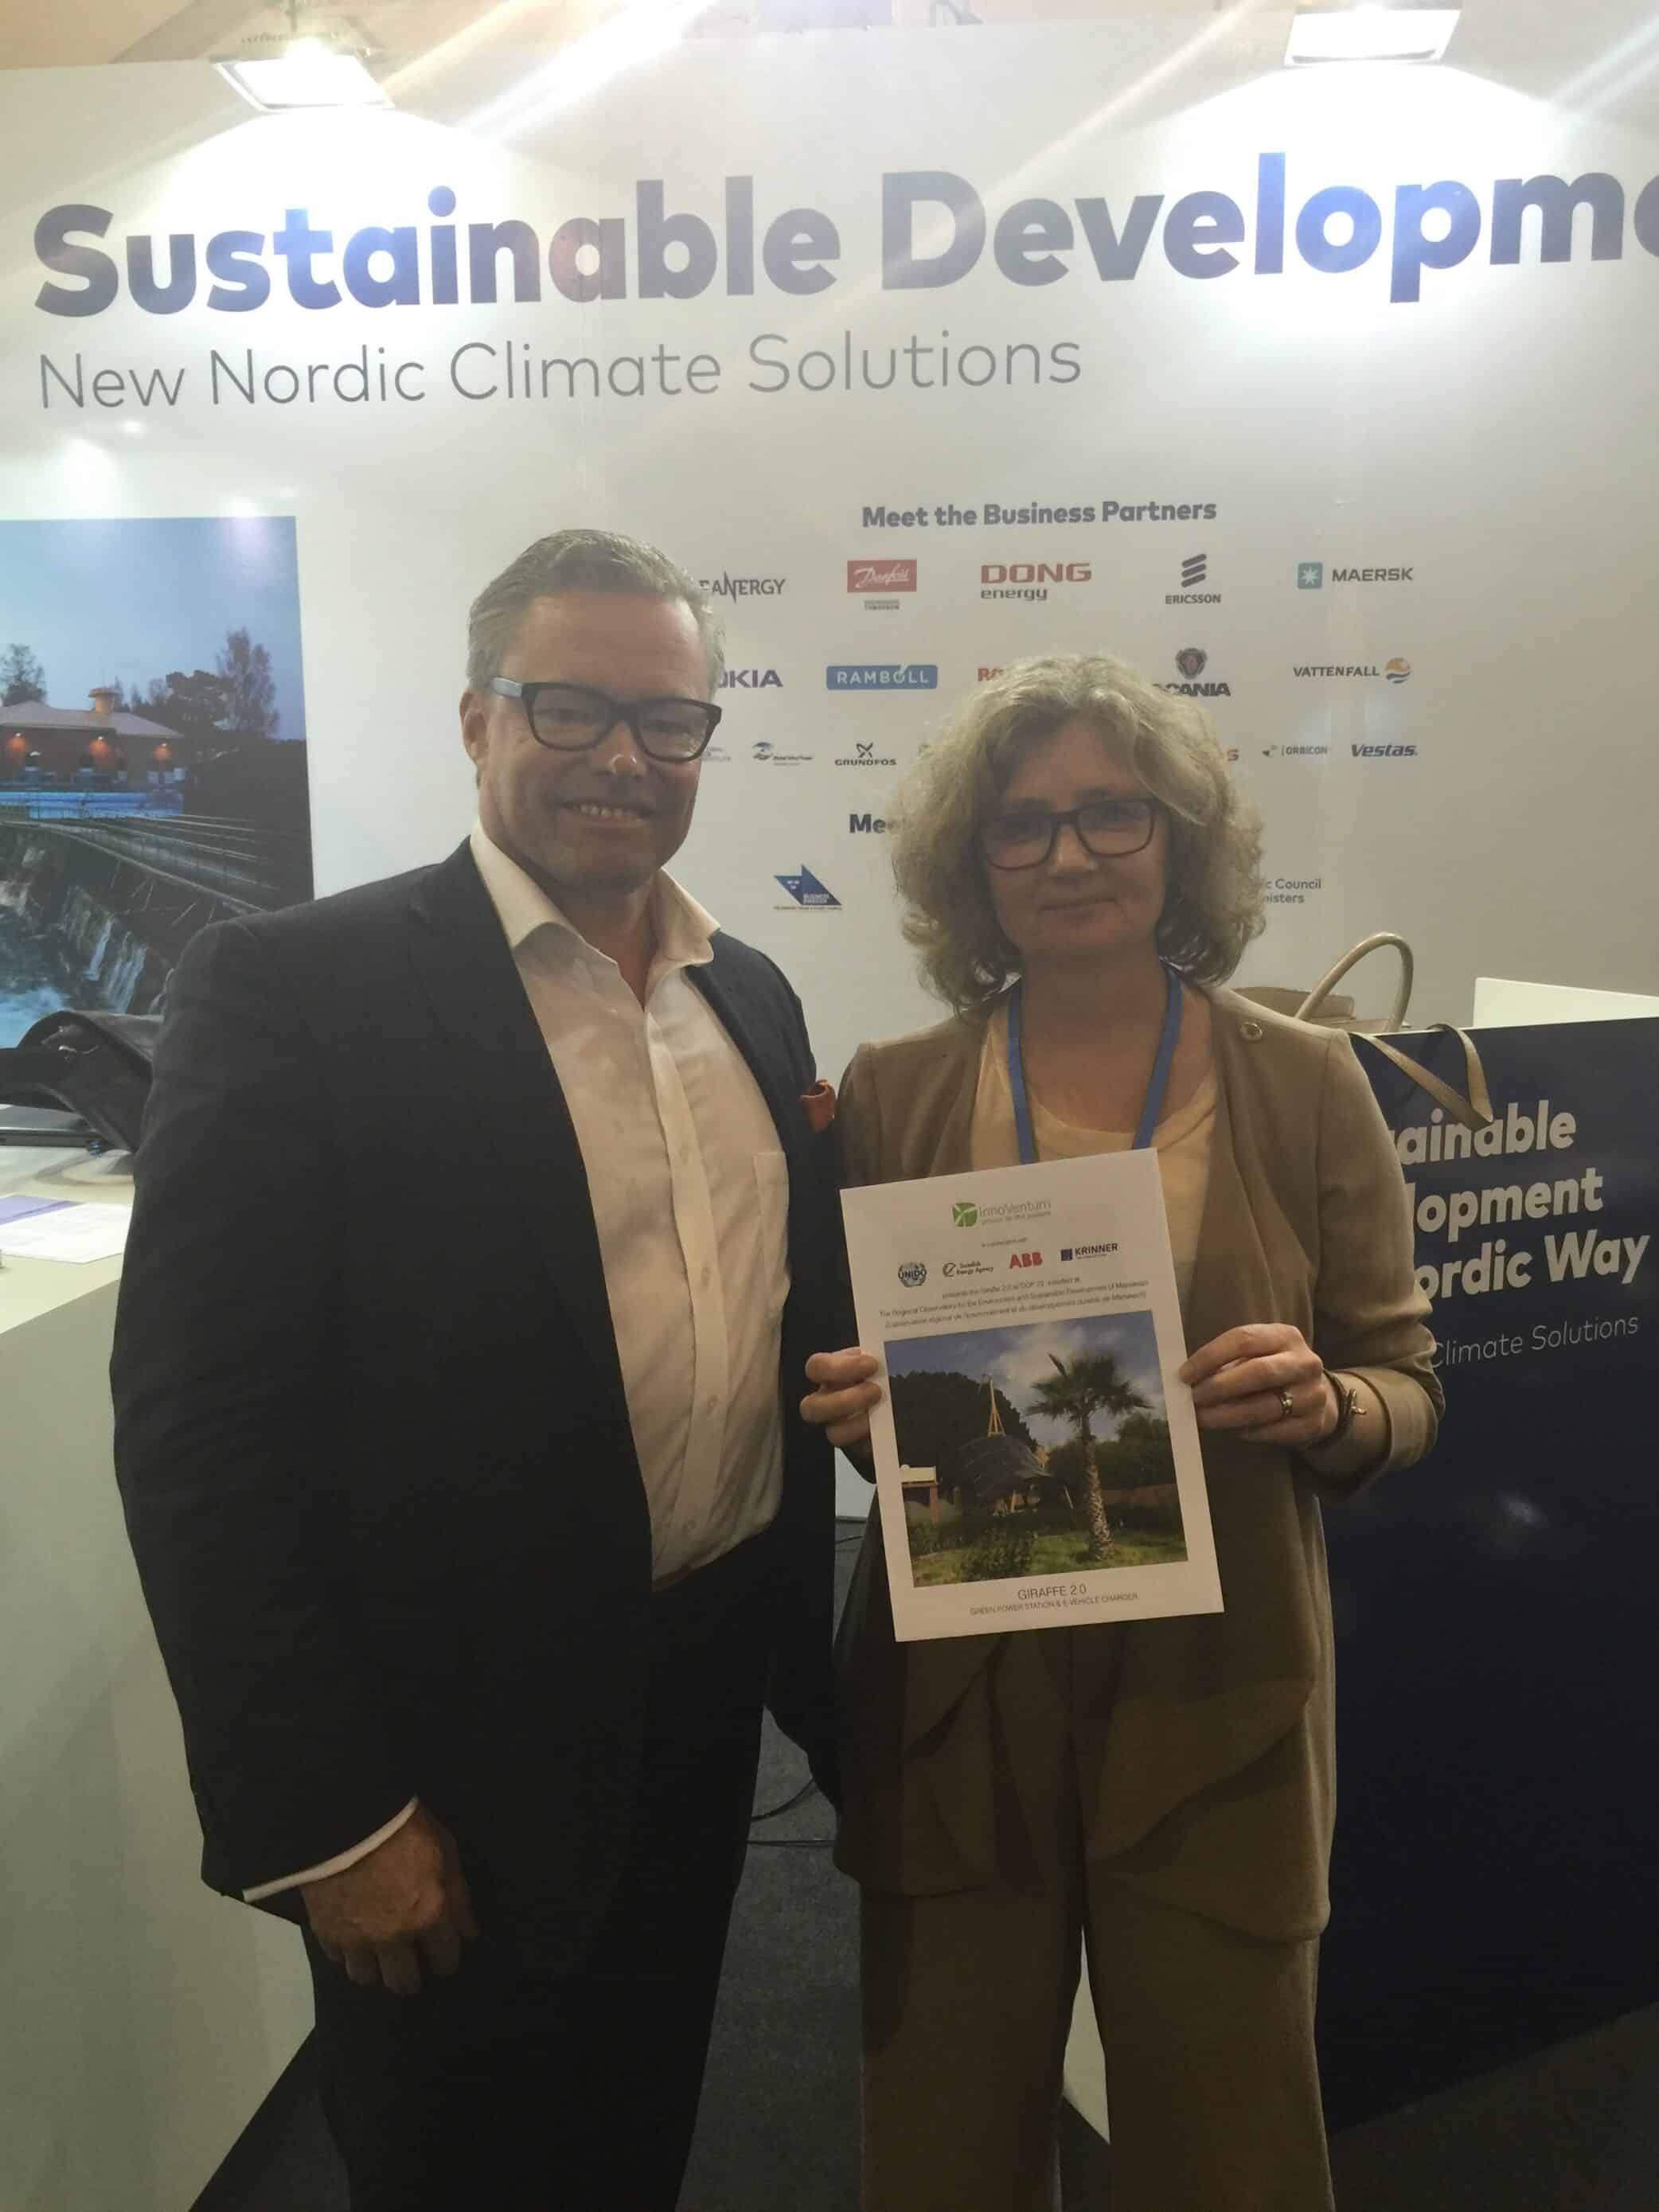 Our CEO Sigvald Harryson with State Secretary Eva Svedling